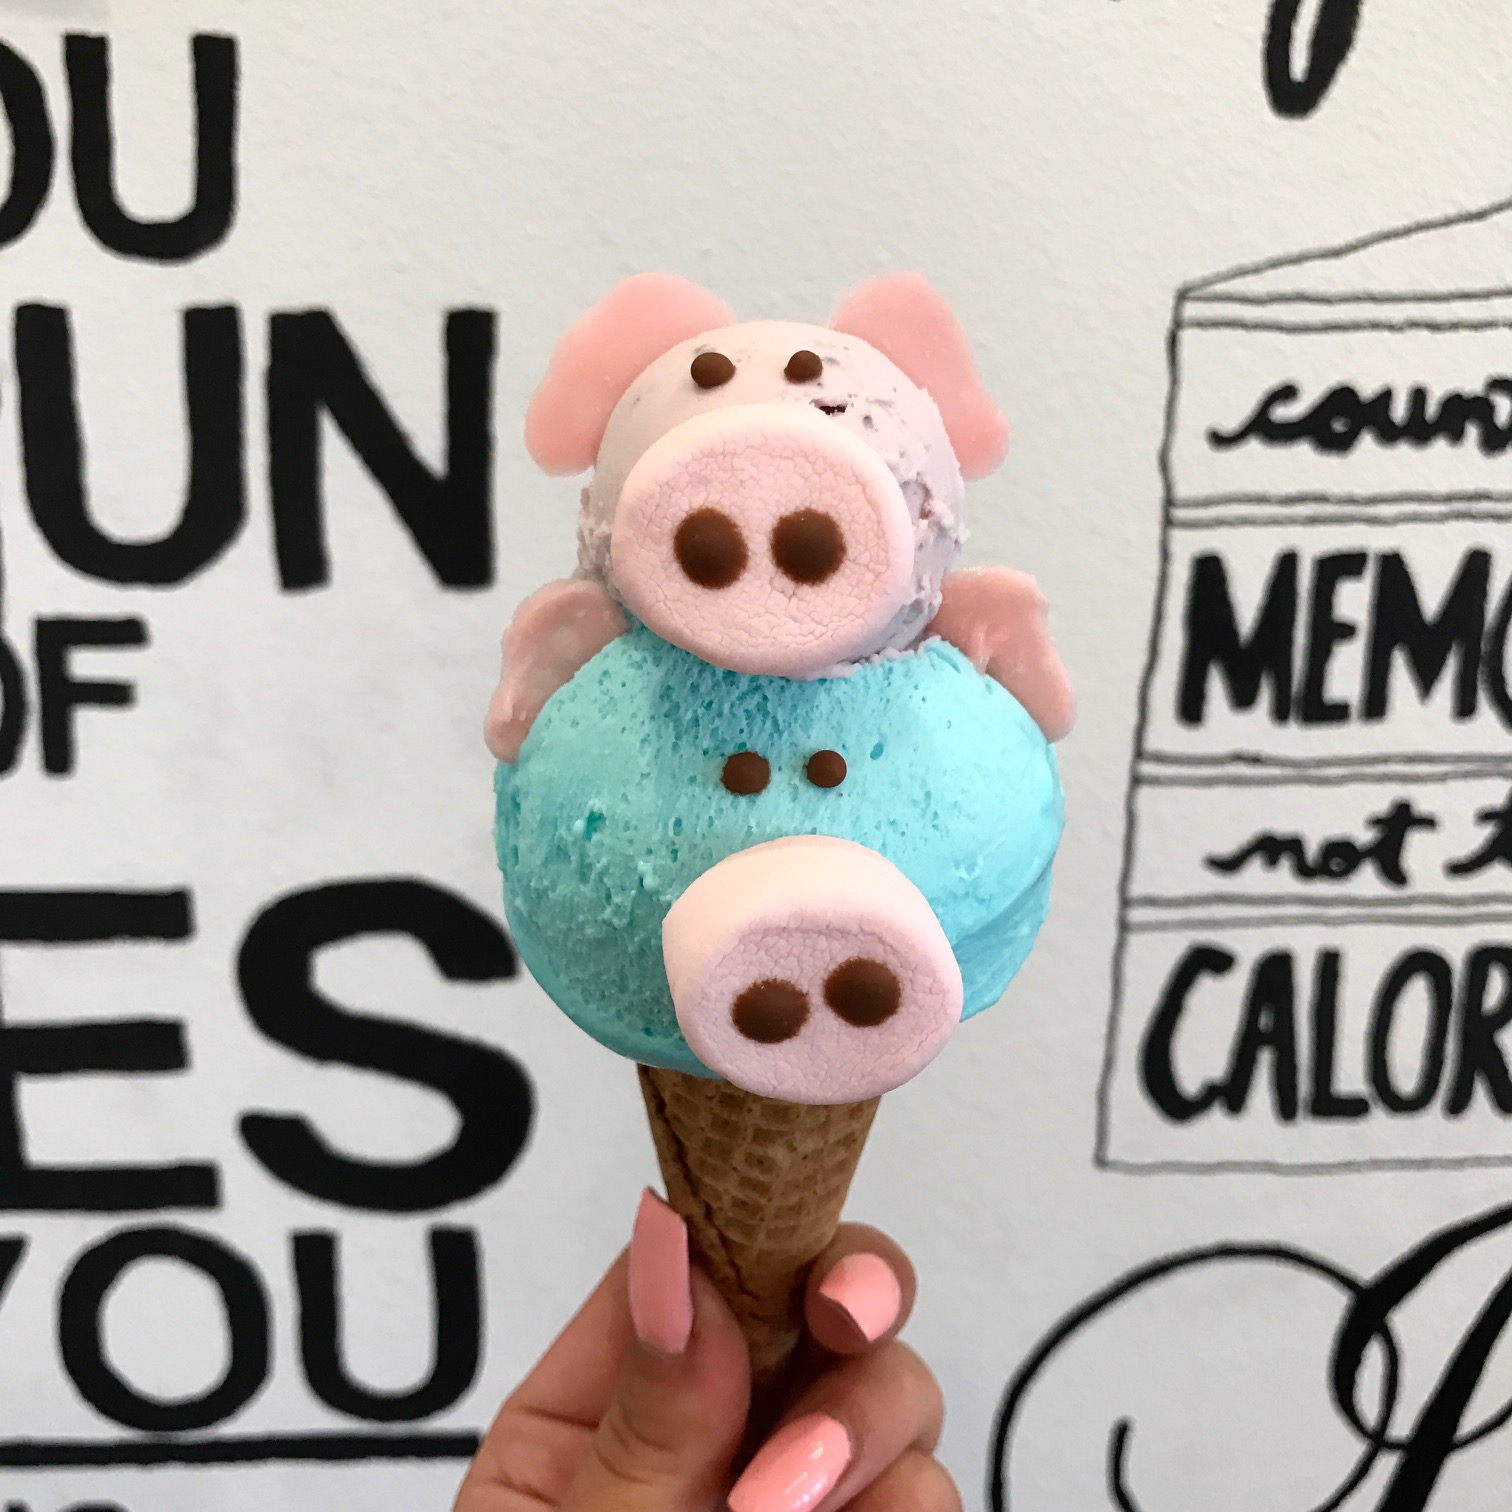 Coolest Desserts in Southern California